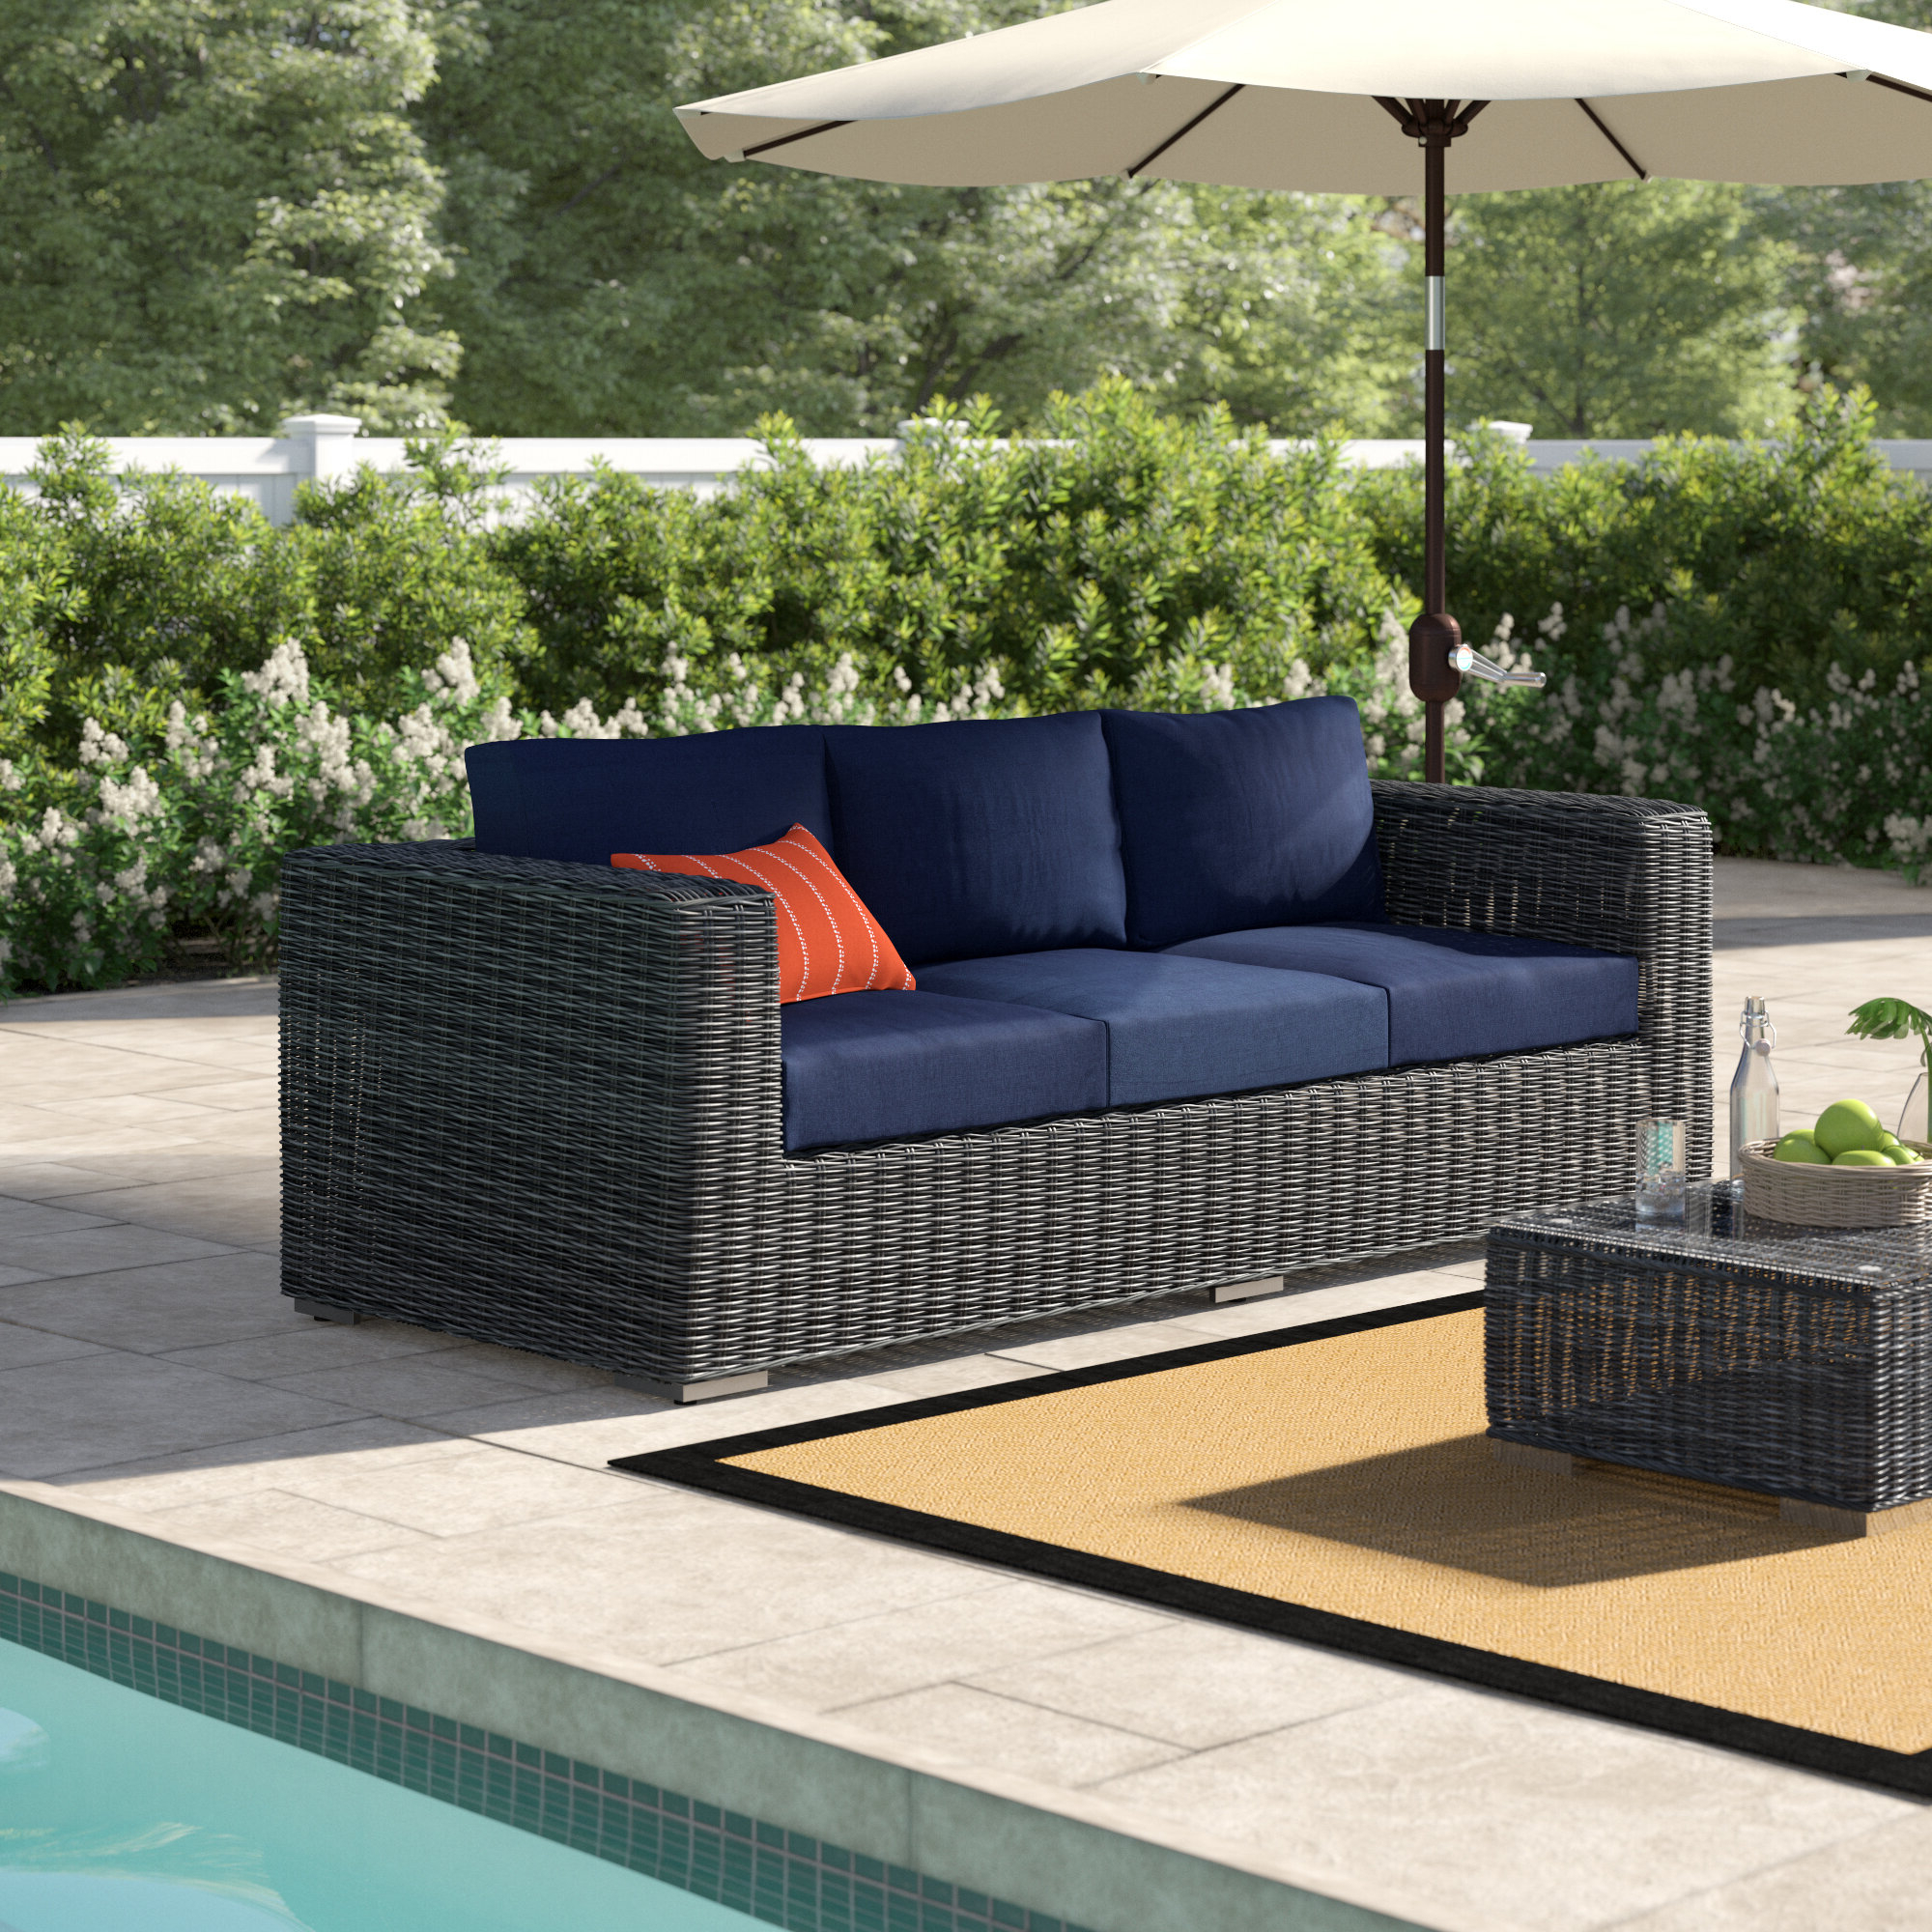 Most Up To Date Keiran Patio Daybeds With Cushions Intended For Keiran Patio Sofa With Cushions (View 17 of 20)